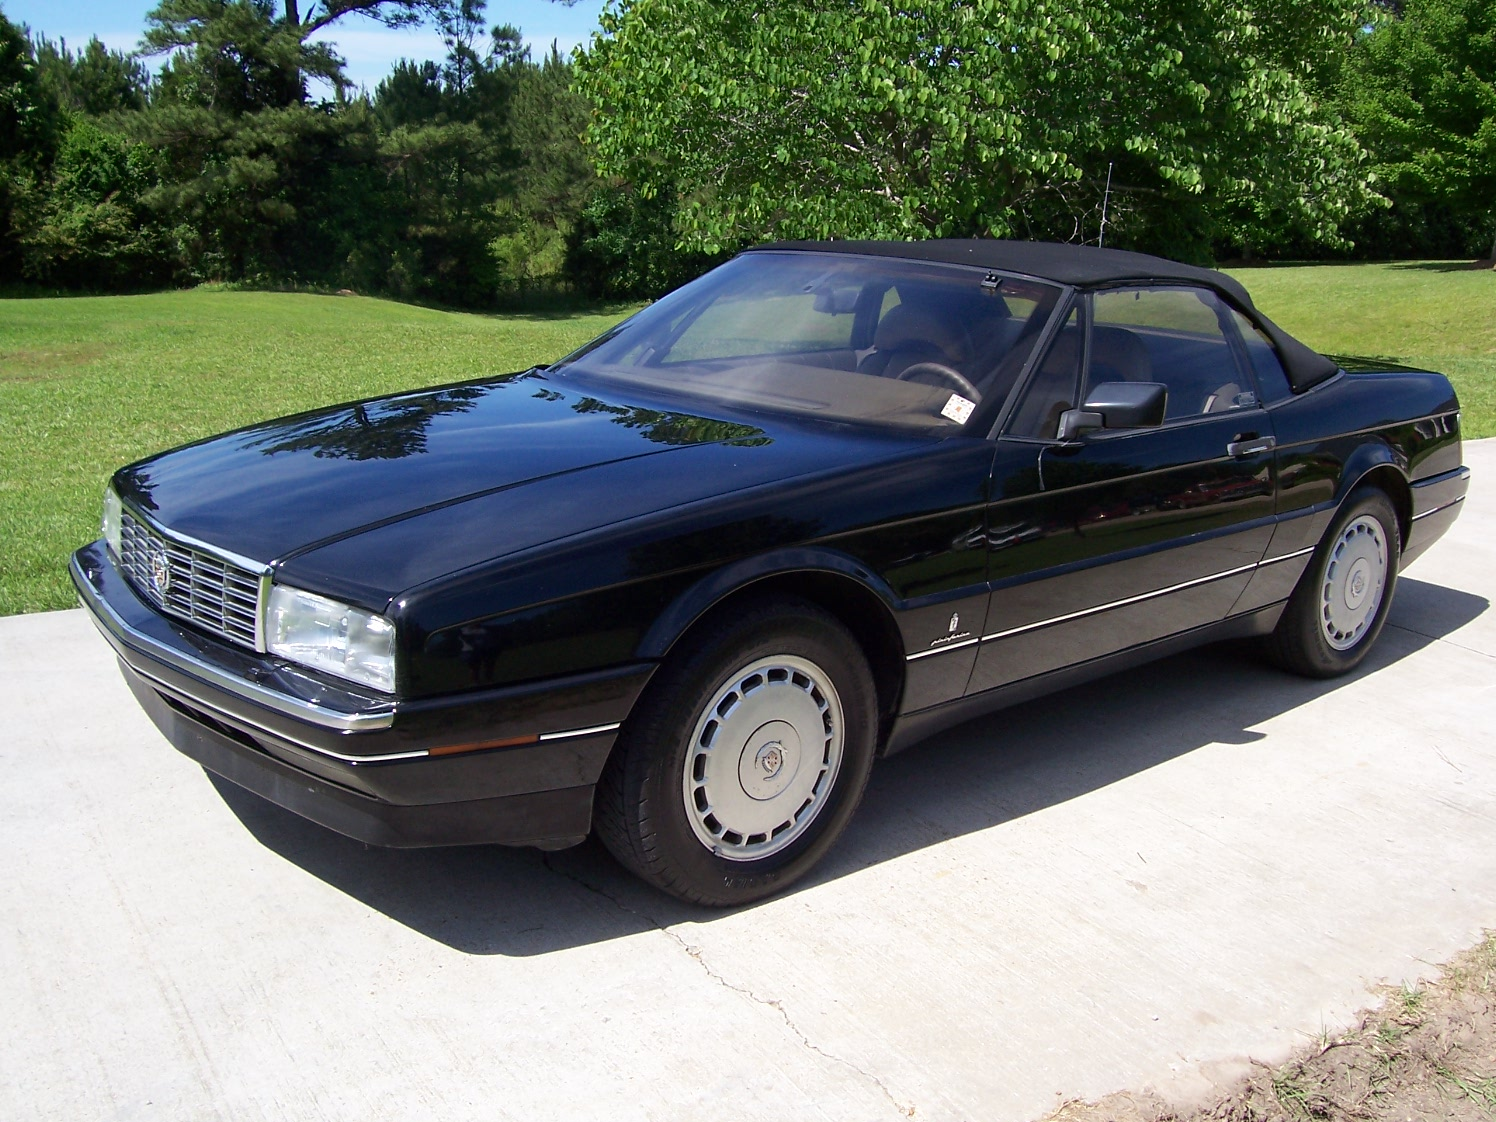 Curbside Classic: 1989 Buick Reatta - A Pudding With No Theme